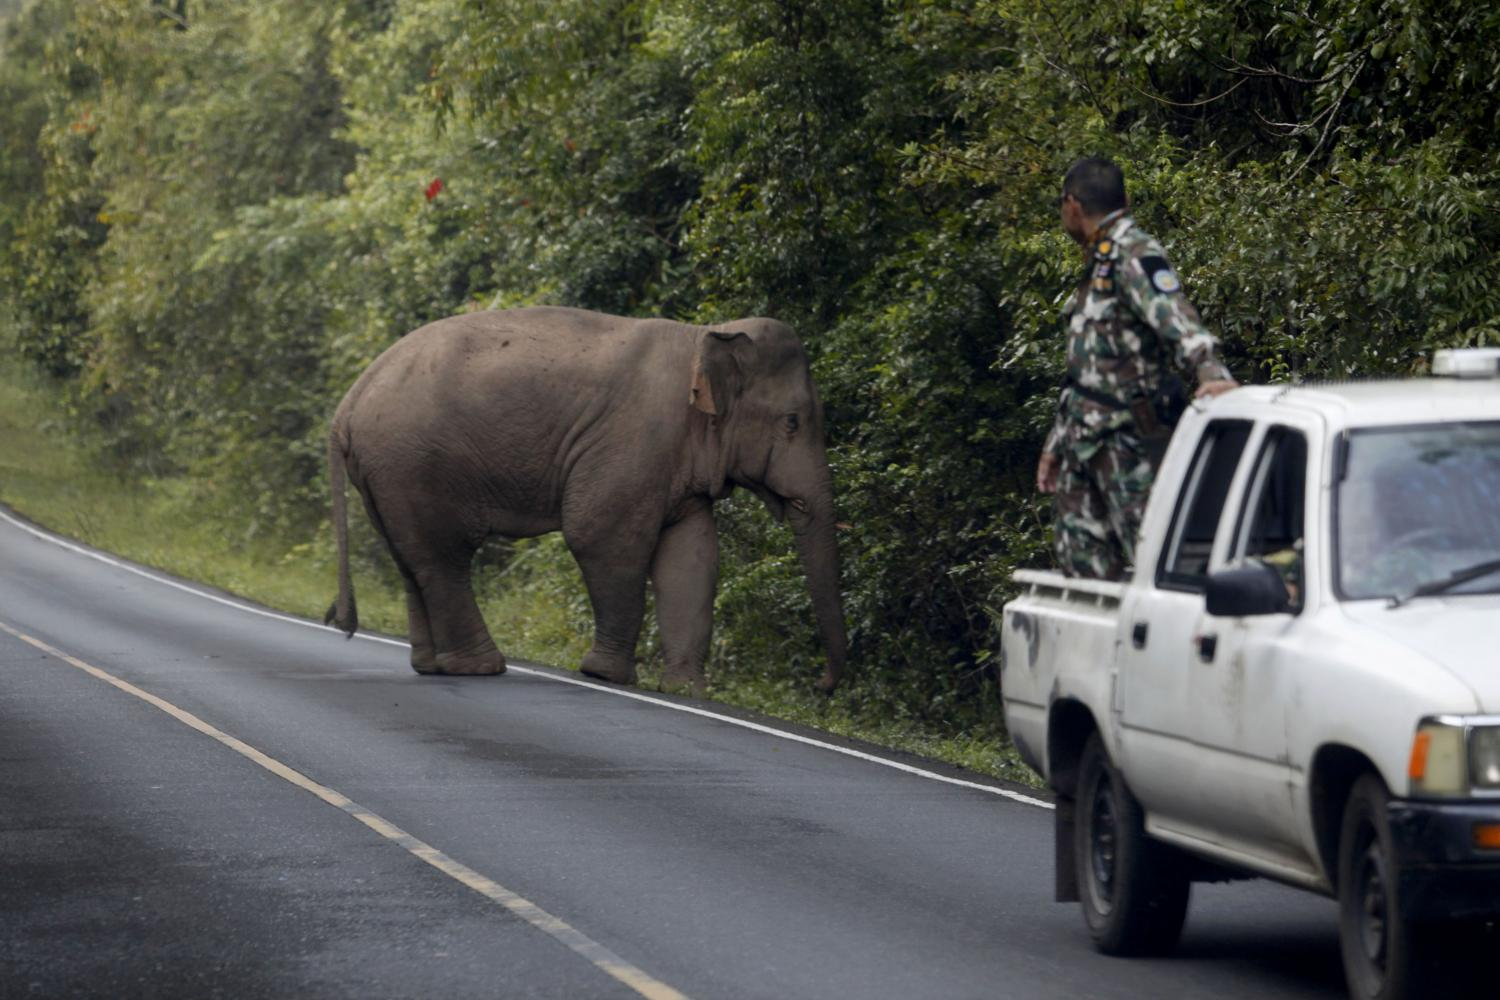 A park ranger tries to encourage a stray elephant to return to the forest in Khao Yai National Park in Prachin Buri.photos by Wichan Charoenkiatpakul